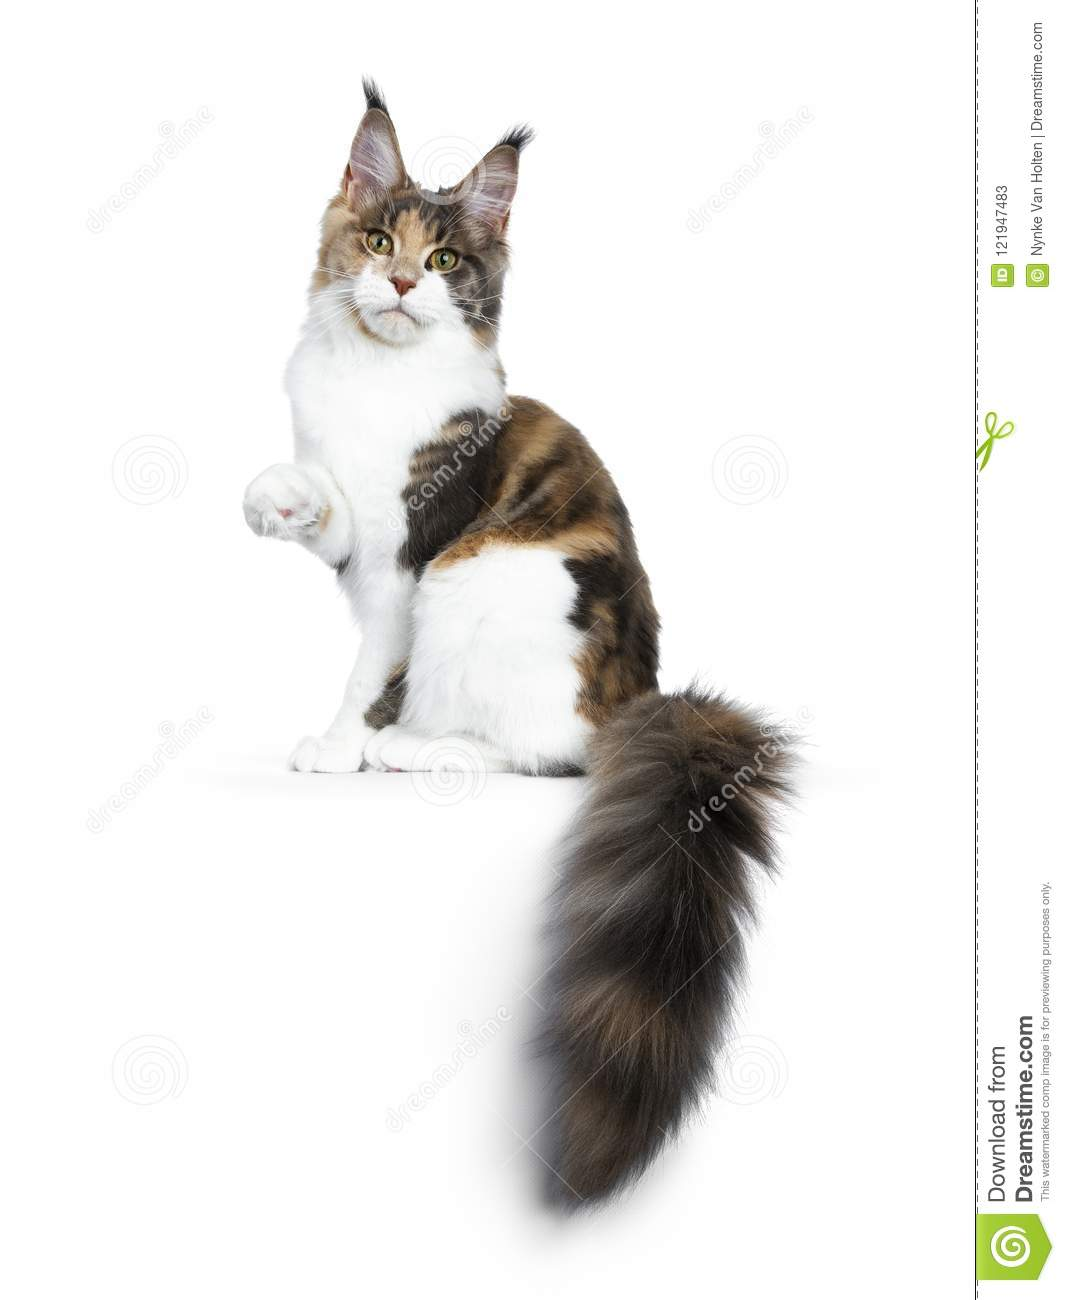 bb2edcc5e2 Pretty Calico Maine Coon Cat Girl Sitting Side Ways With Tail ...